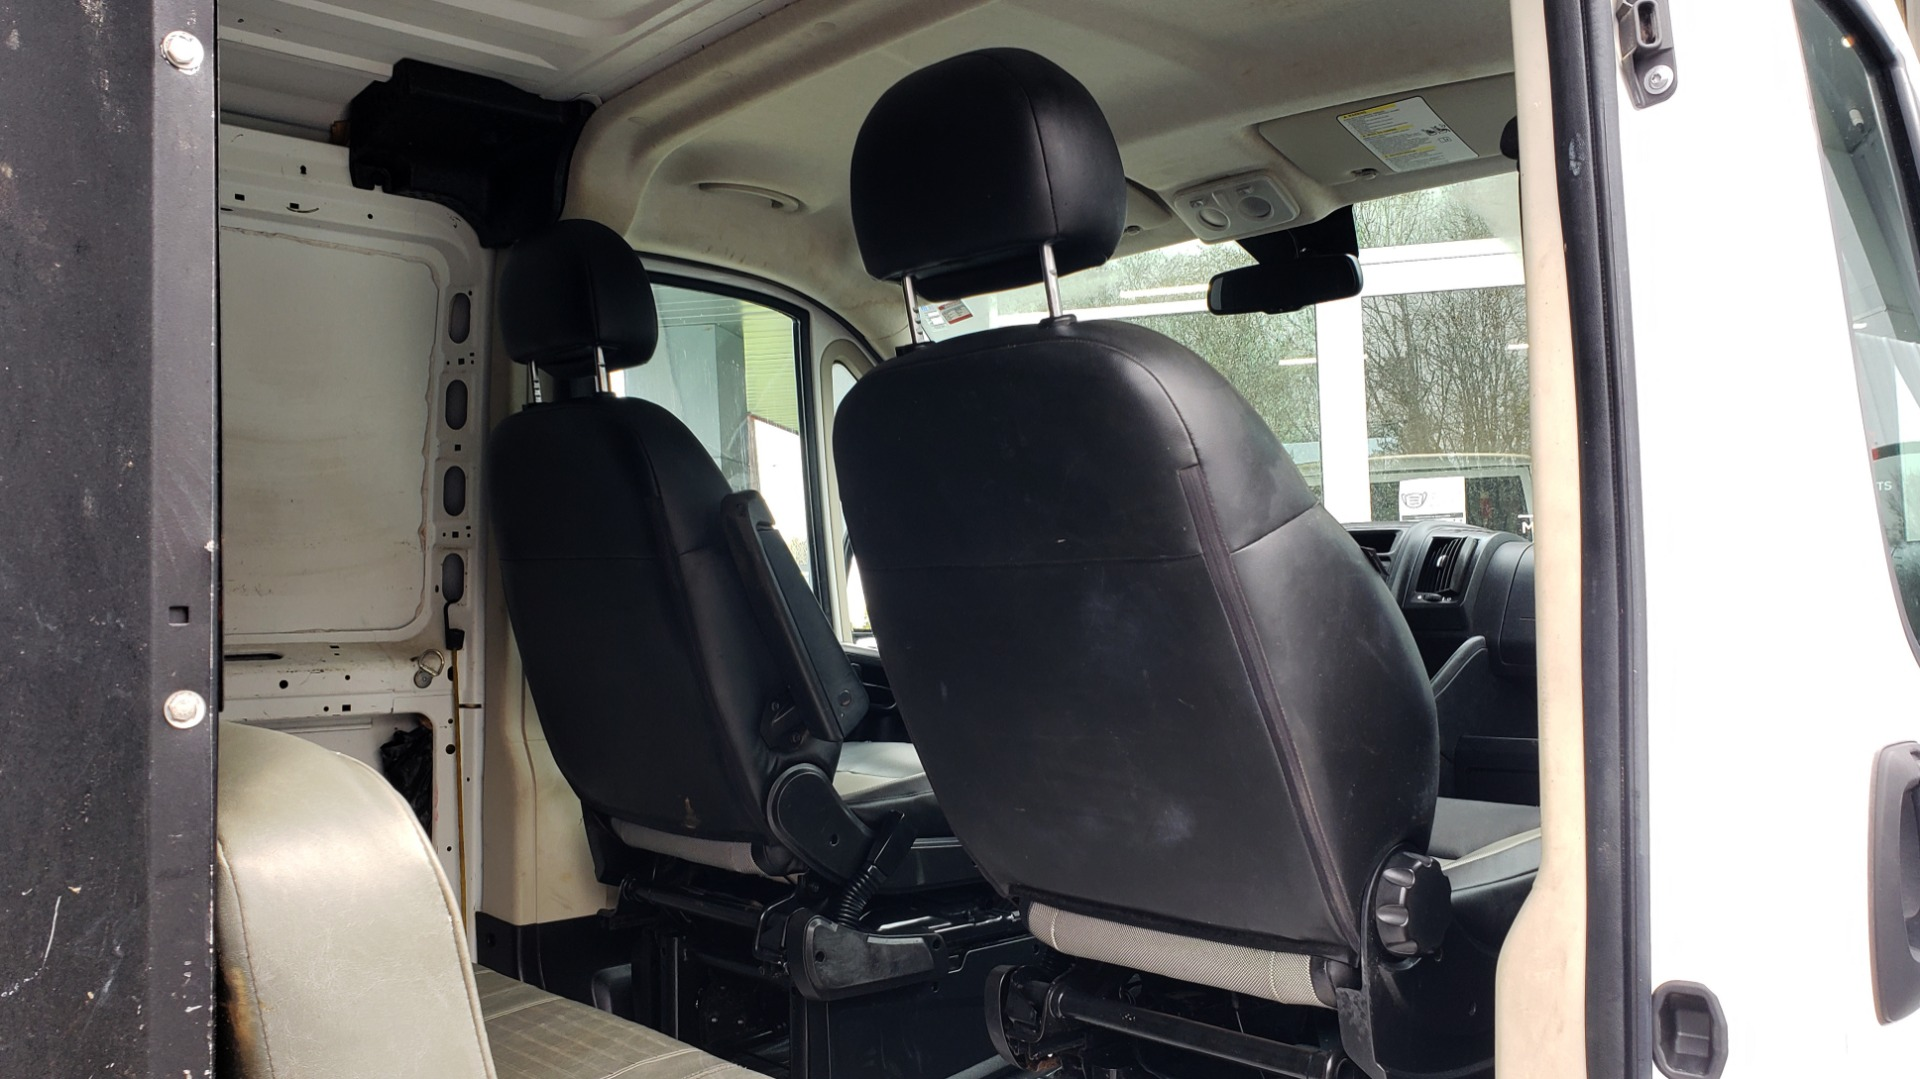 Used 2015 Ram PROMASTER CARGO VAN 136-INCH WB / LOW ROOF / LADDER RACK / INSIDE RACKS for sale $15,995 at Formula Imports in Charlotte NC 28227 30